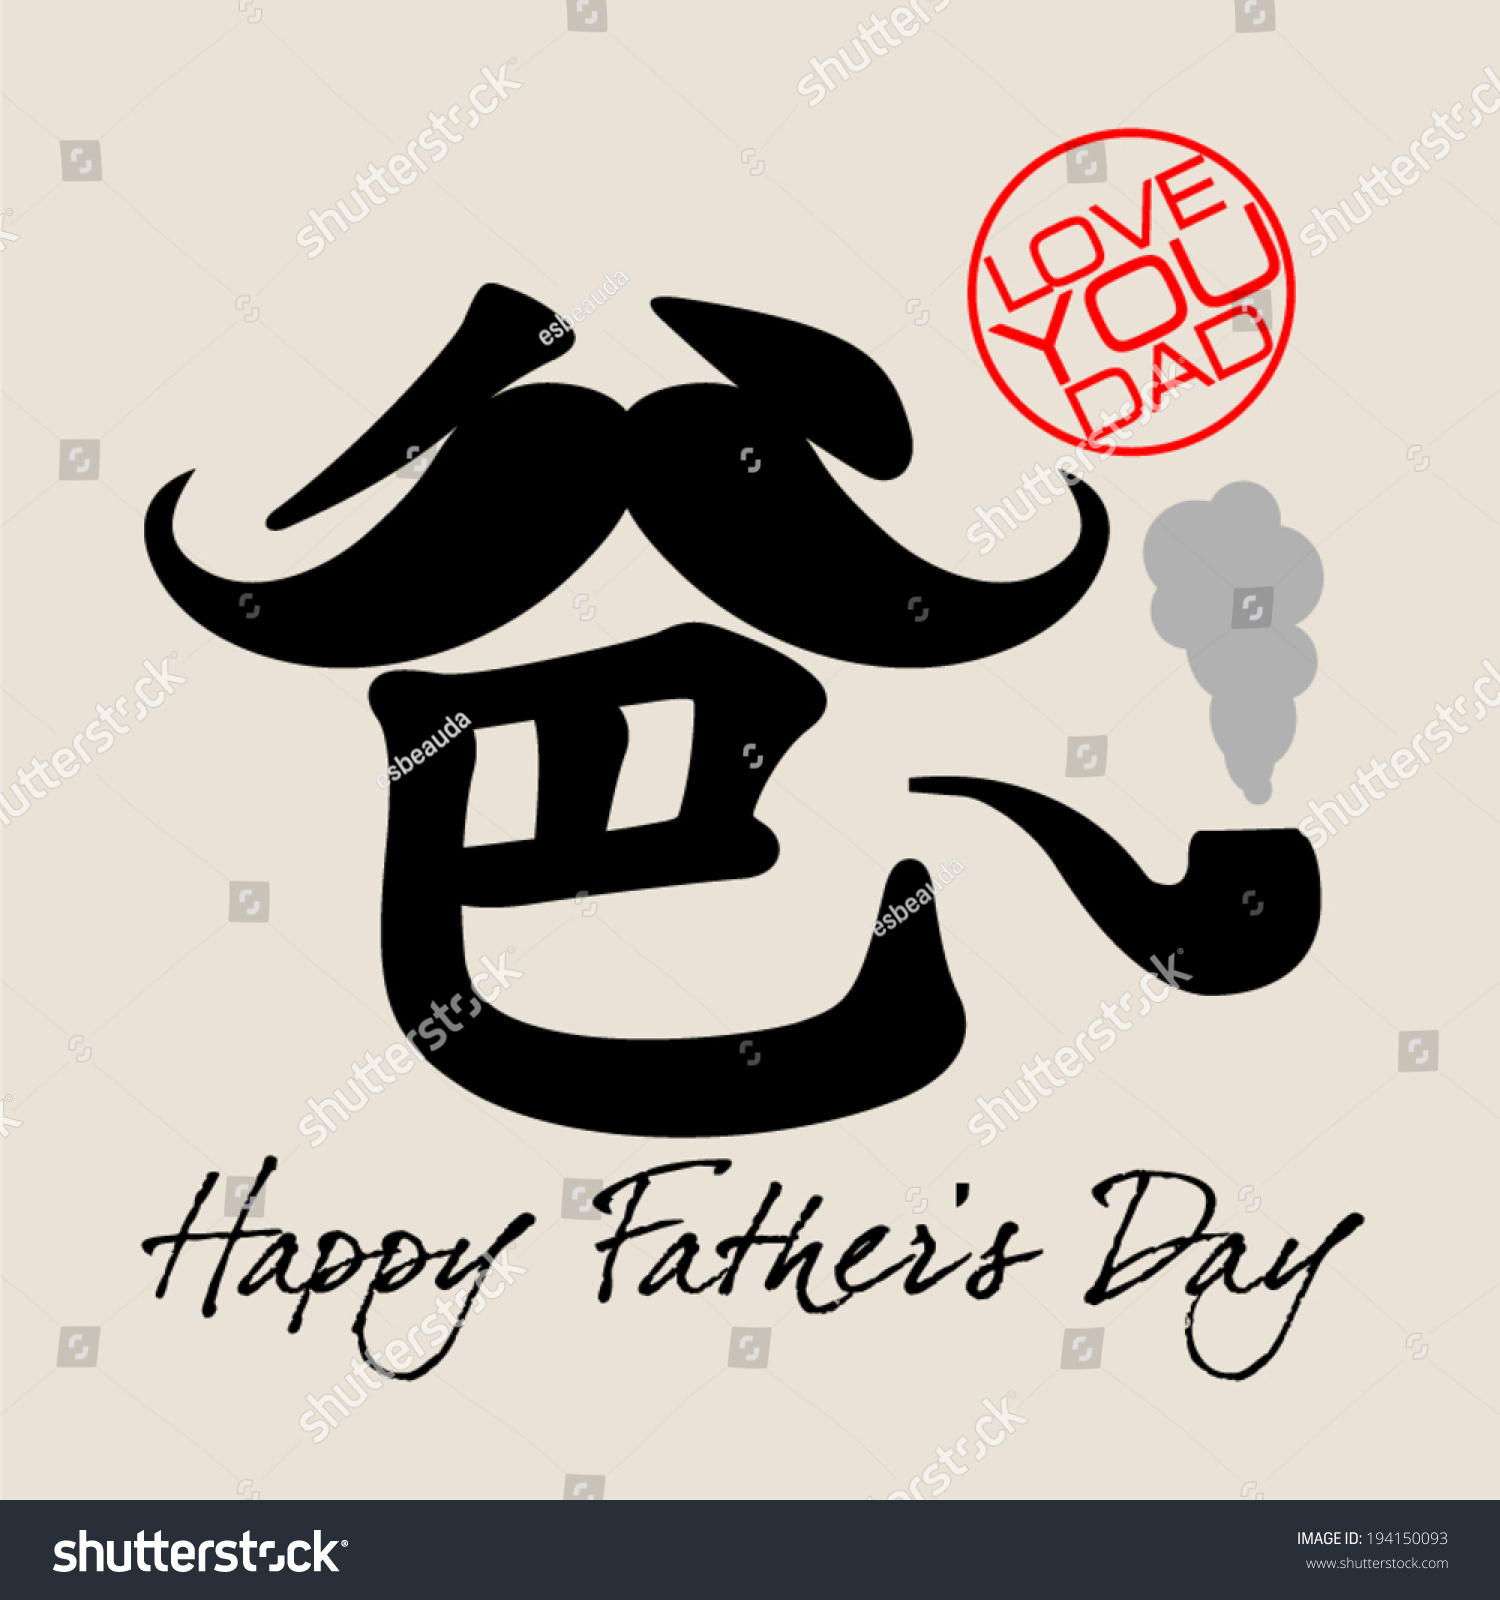 greeting card design fathers day chinese stock vector 194150093